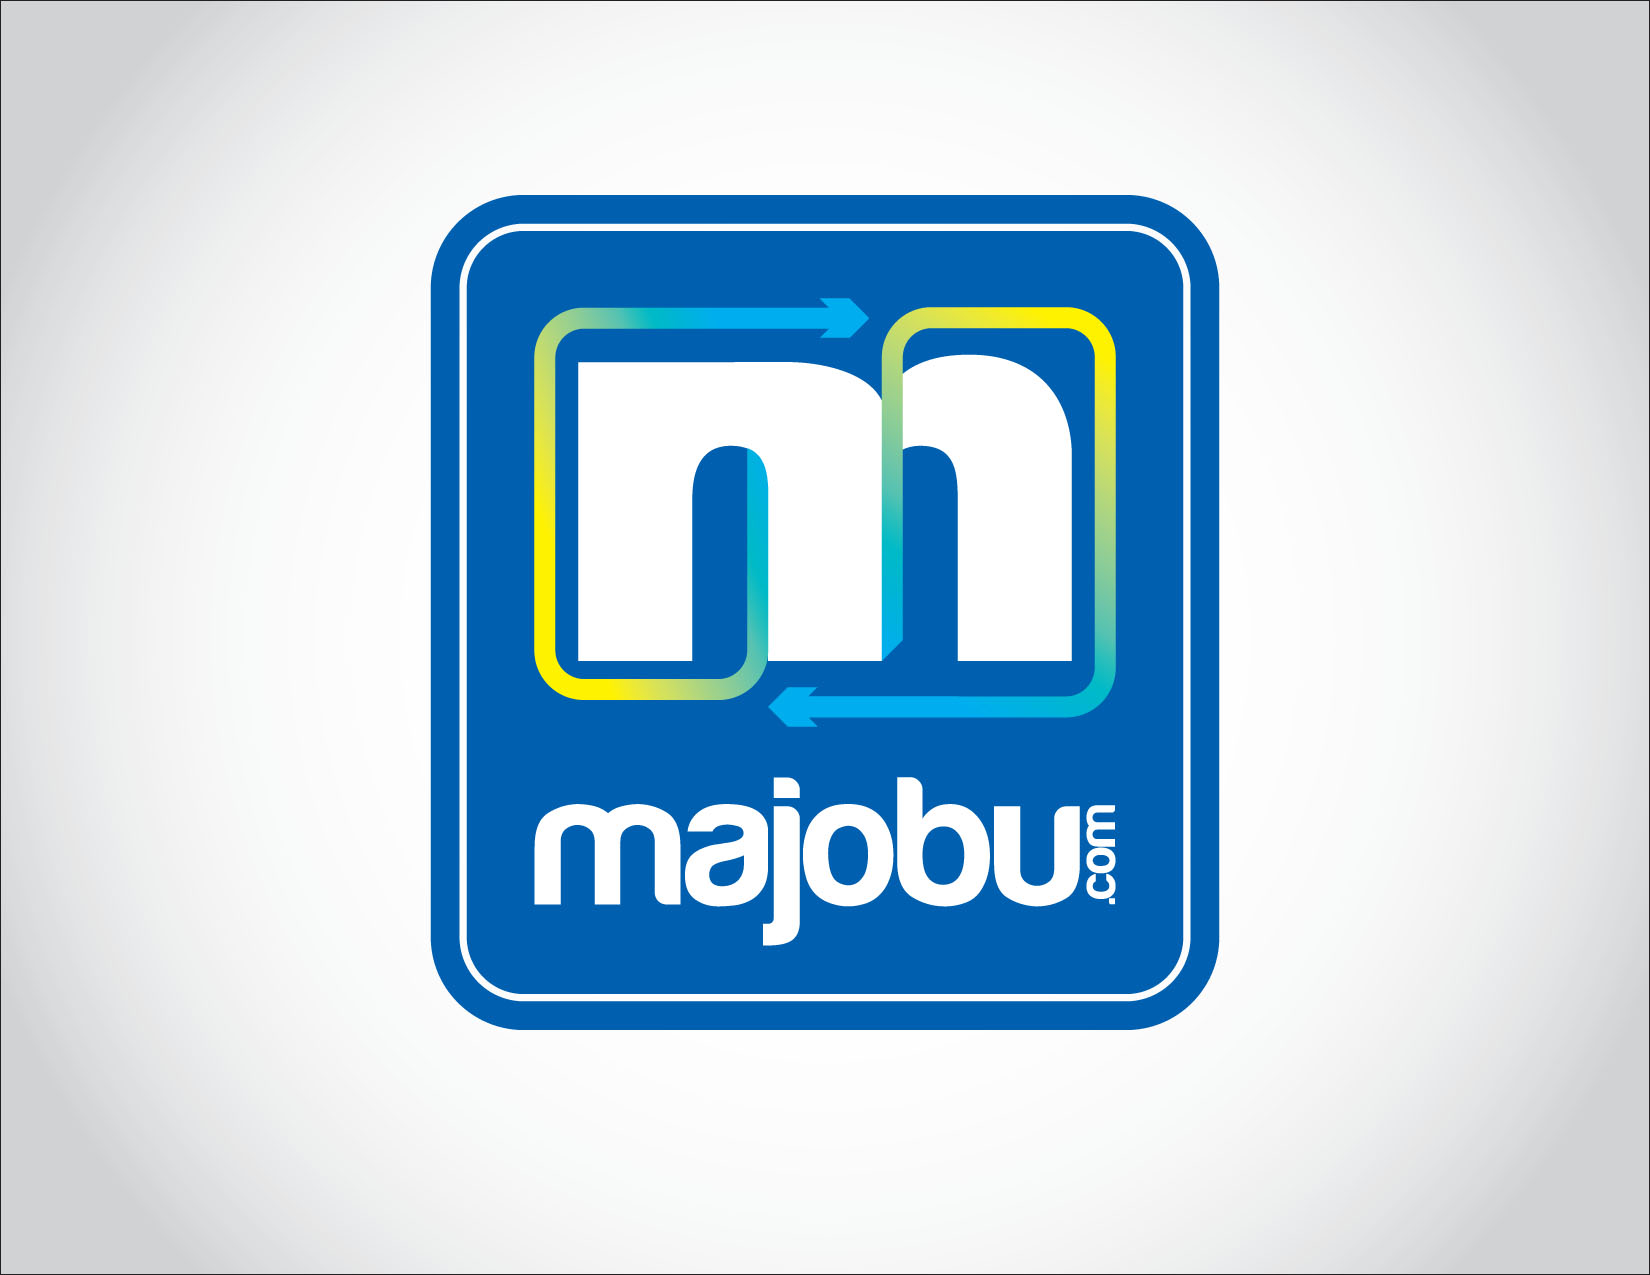 Logo Design by Private User - Entry No. 73 in the Logo Design Contest Inspiring Logo Design for Majobu.